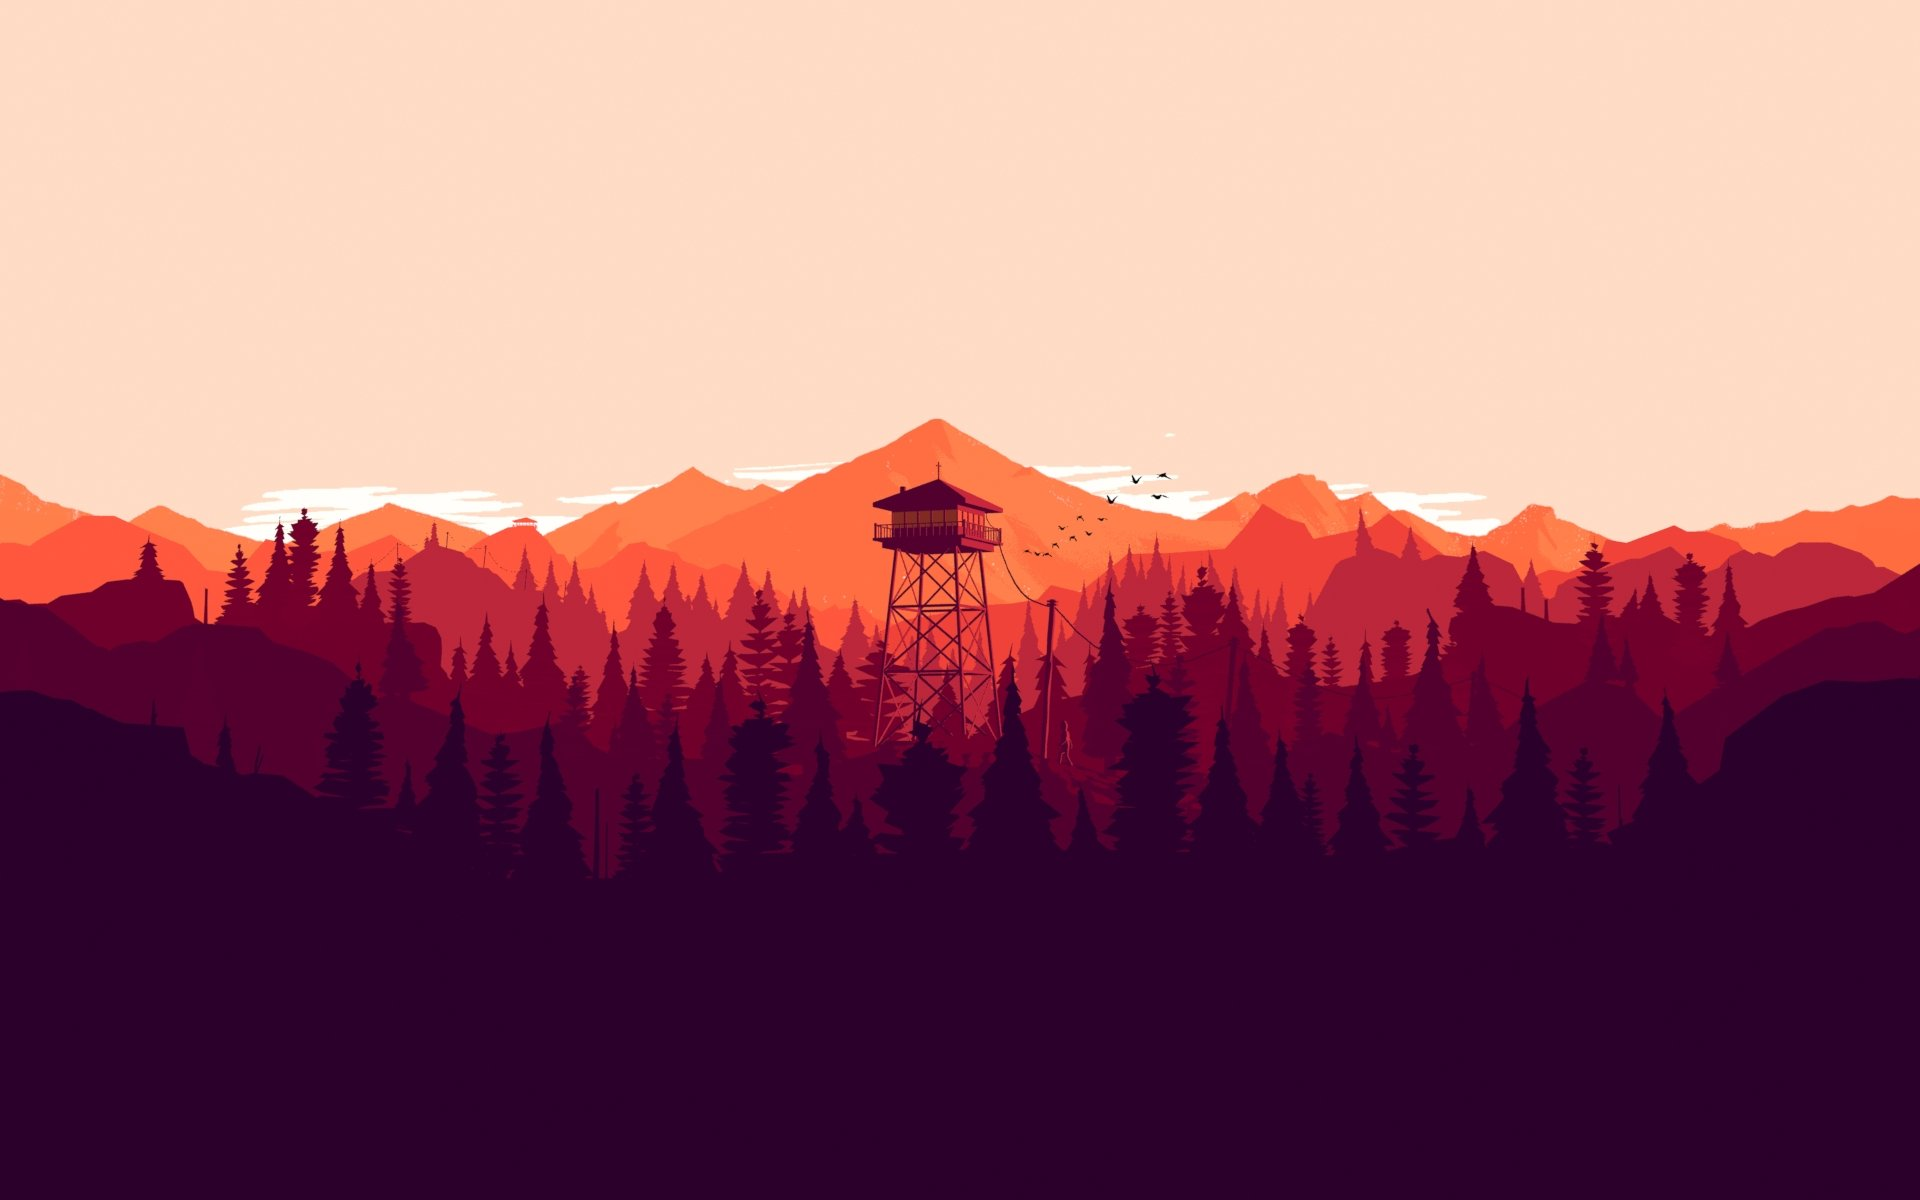 My Take On The Campo Santo Olly Moss Concept Art For Firewatch